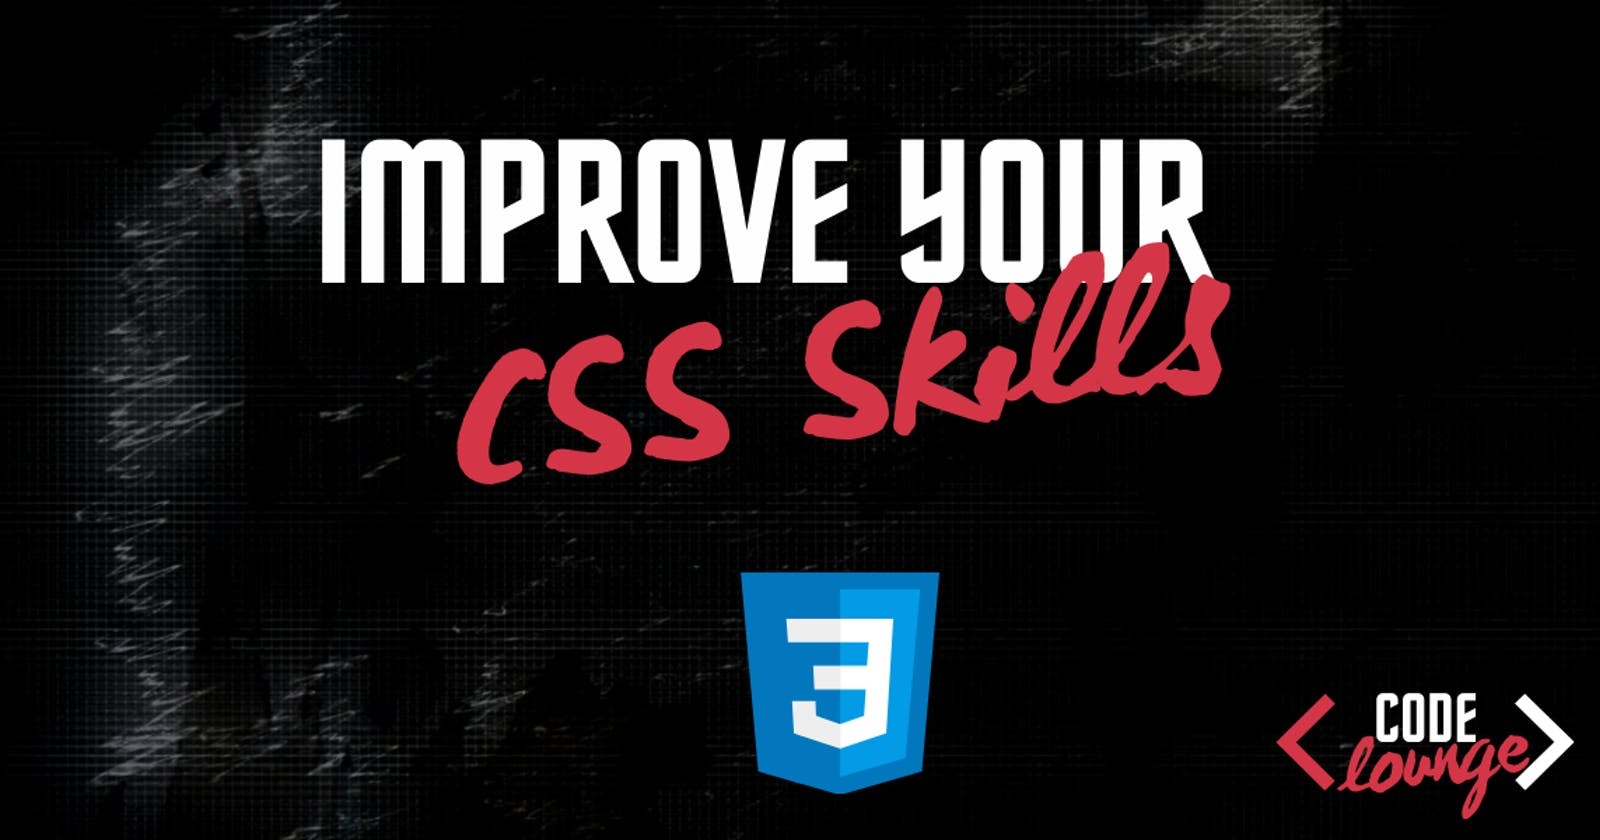 12 Resources To Improve Your CSS Skills And Speed Up CSS Development